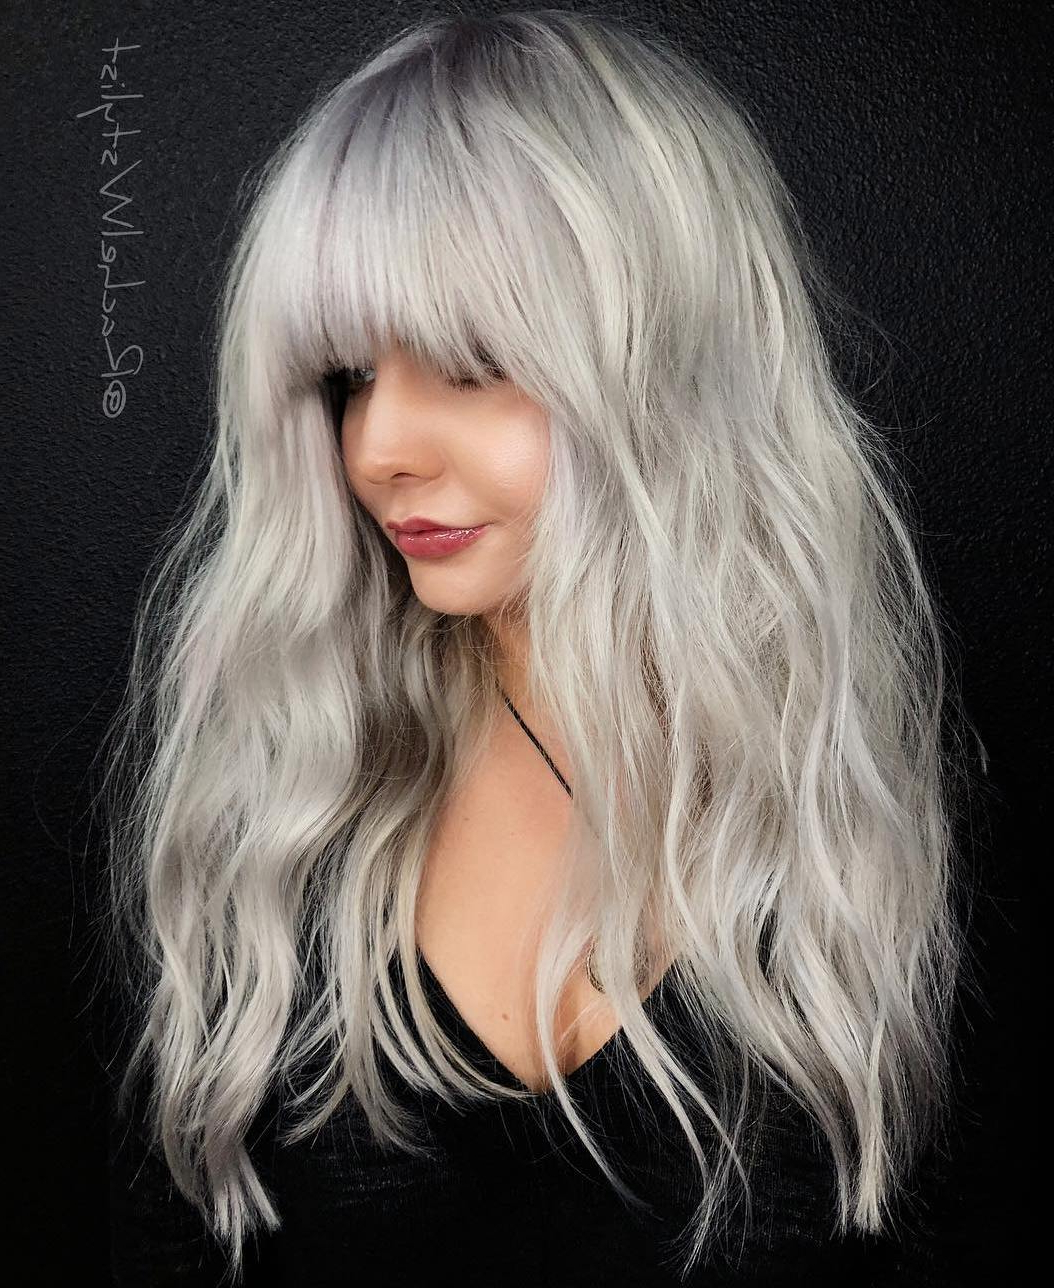 Well Known Messy Voluminous Ponytail Hairstyles With Textured Bangs Within 35 Instagram Popular Ways To Pull Off Long Hair With Bangs (Gallery 19 of 20)